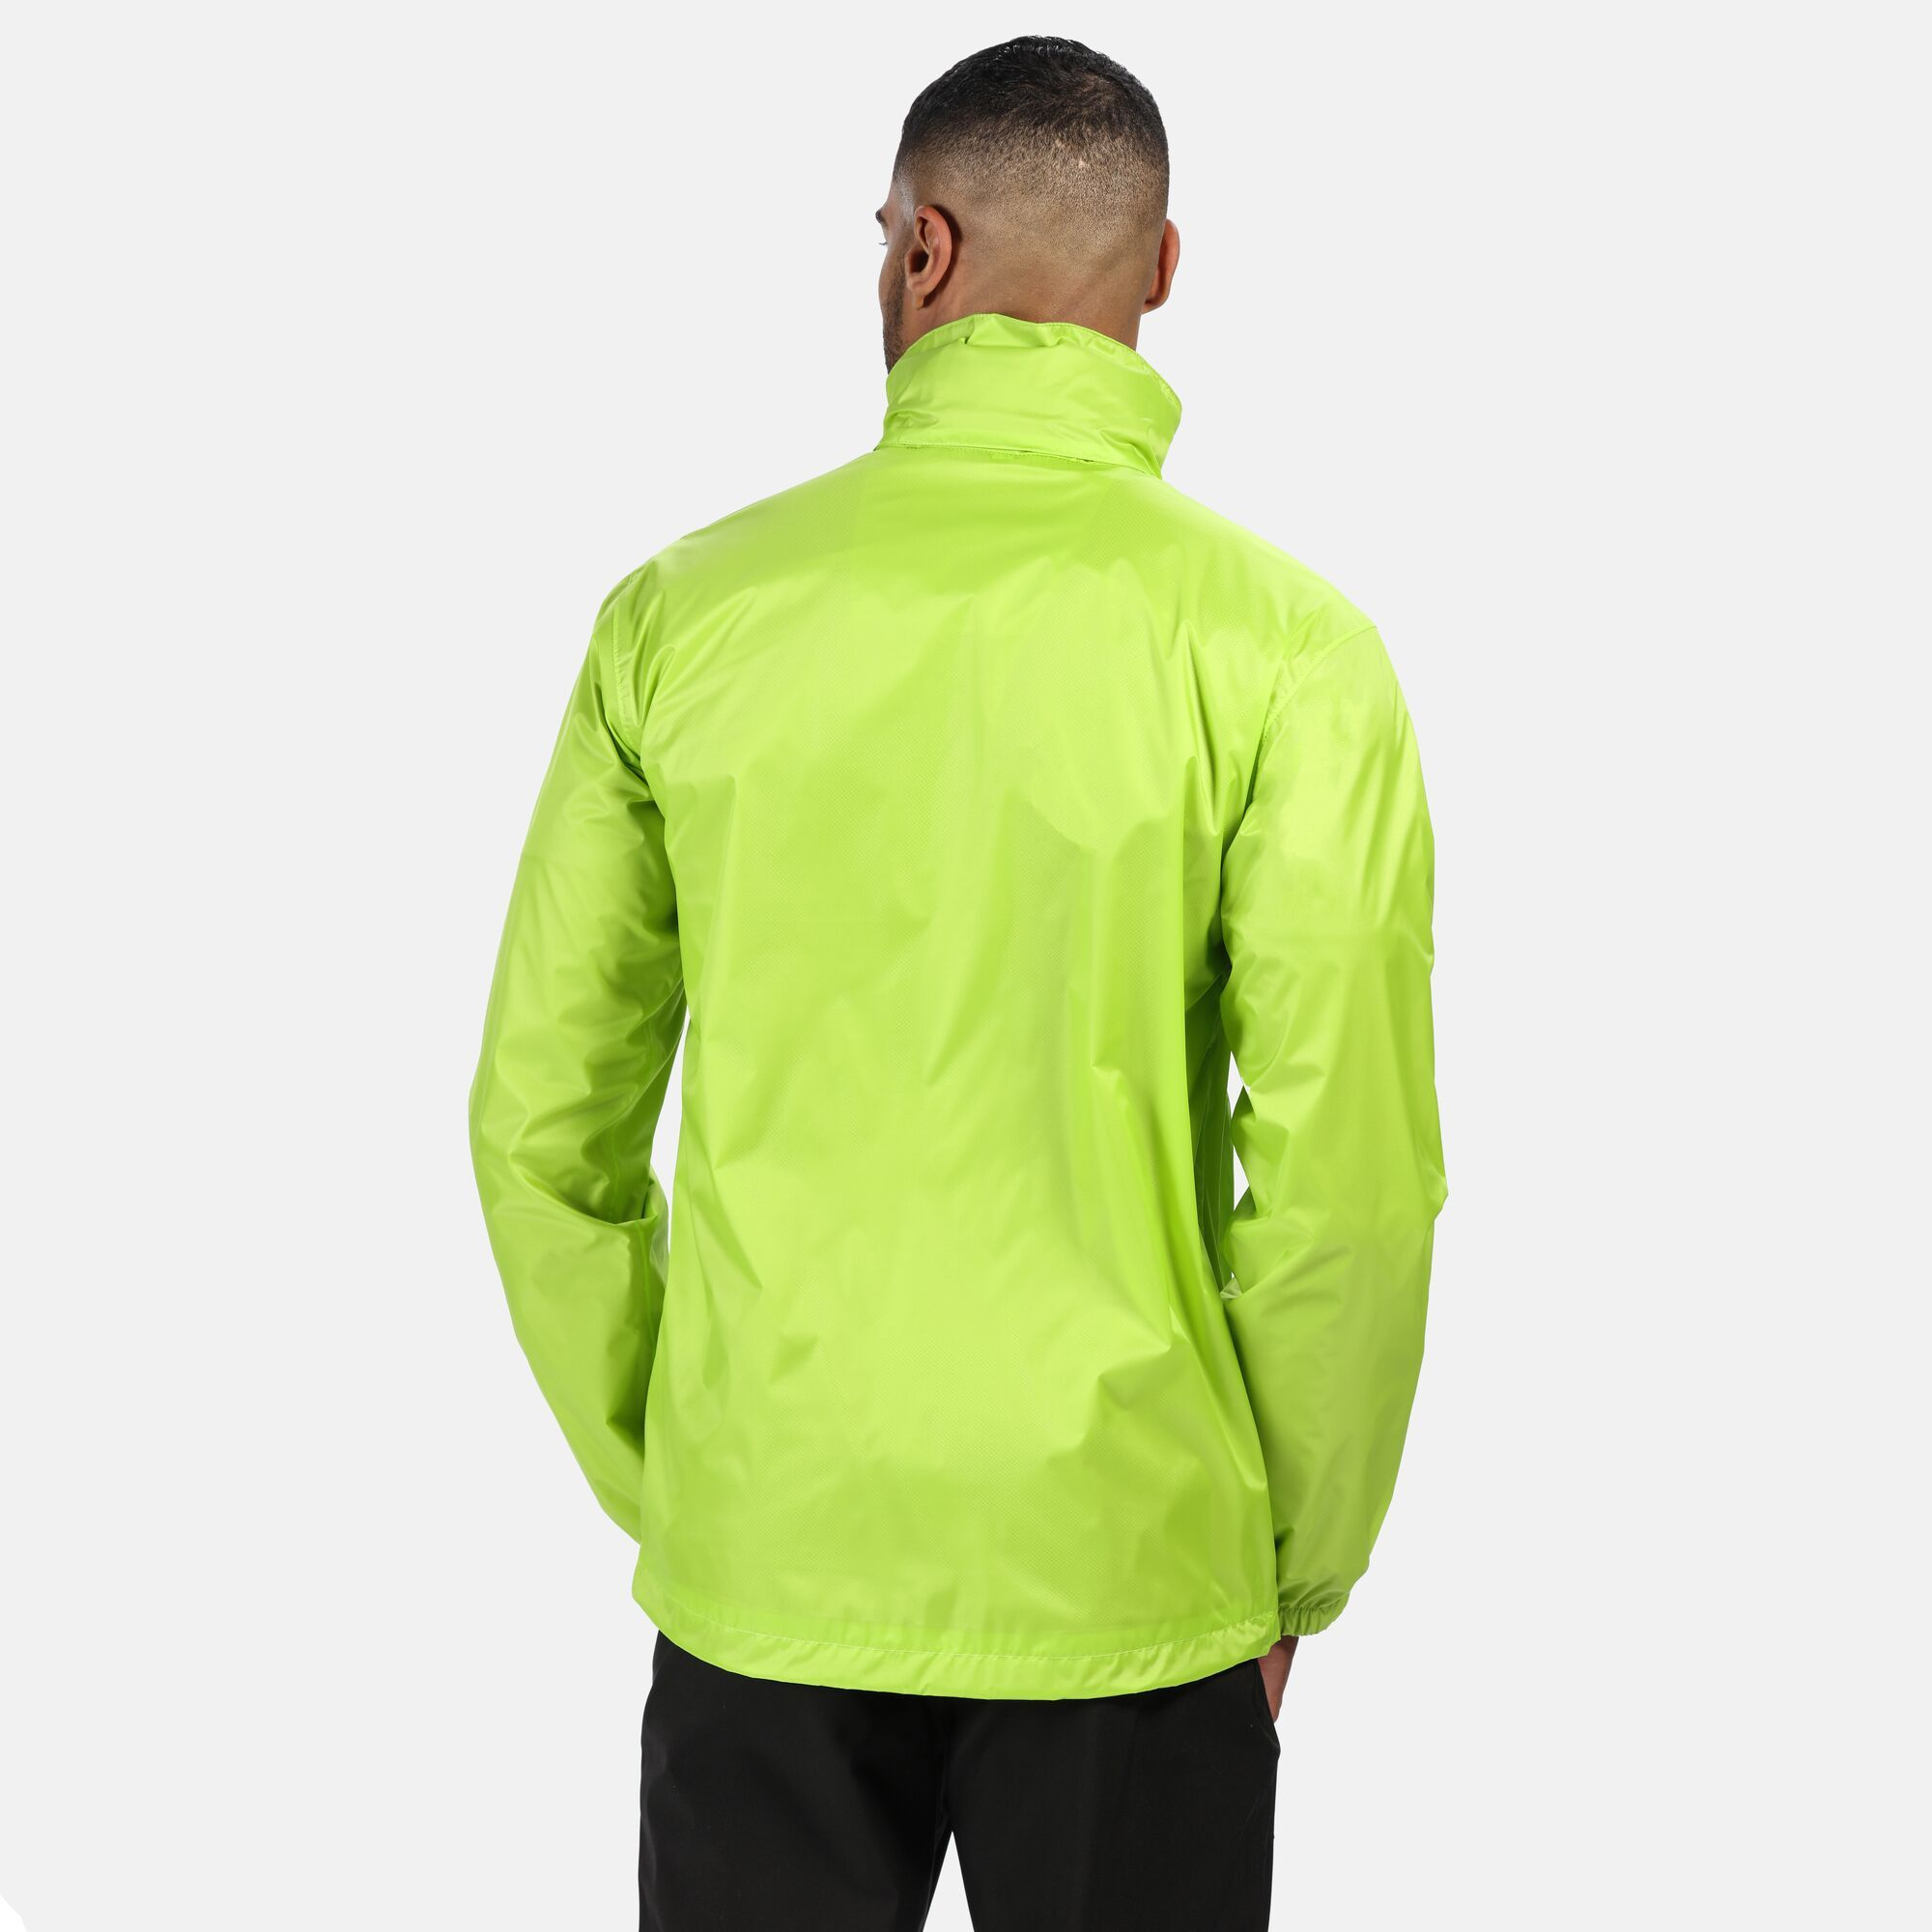 Mens-Regatta-Lightweight-Waterproof-Windproof-Jacket-Clearance-RRP-70-00 thumbnail 32